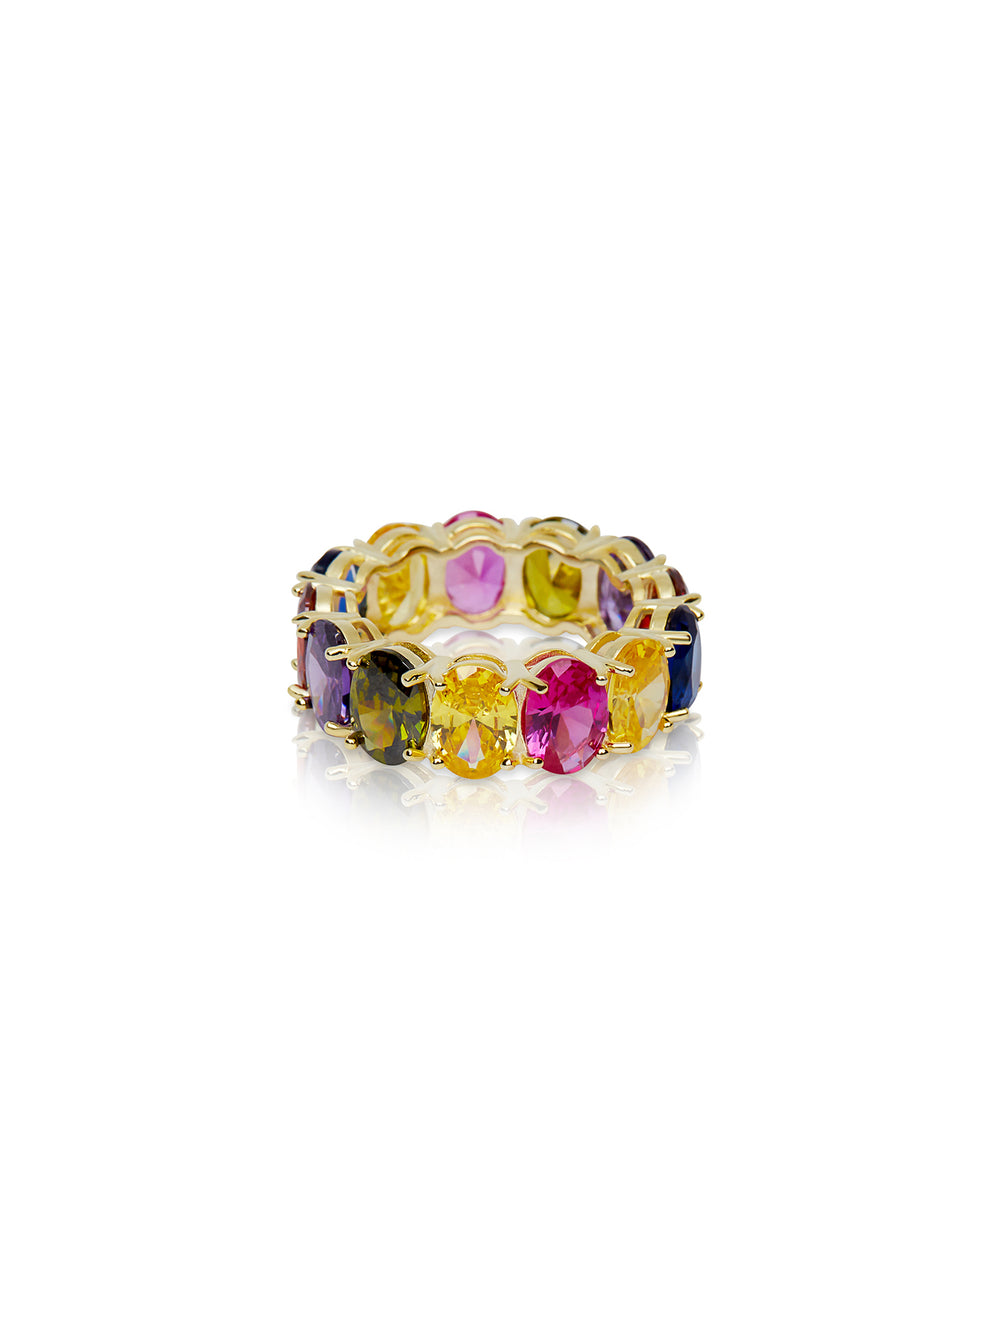 THE OVAL RAINBOW ETERNITY BAND